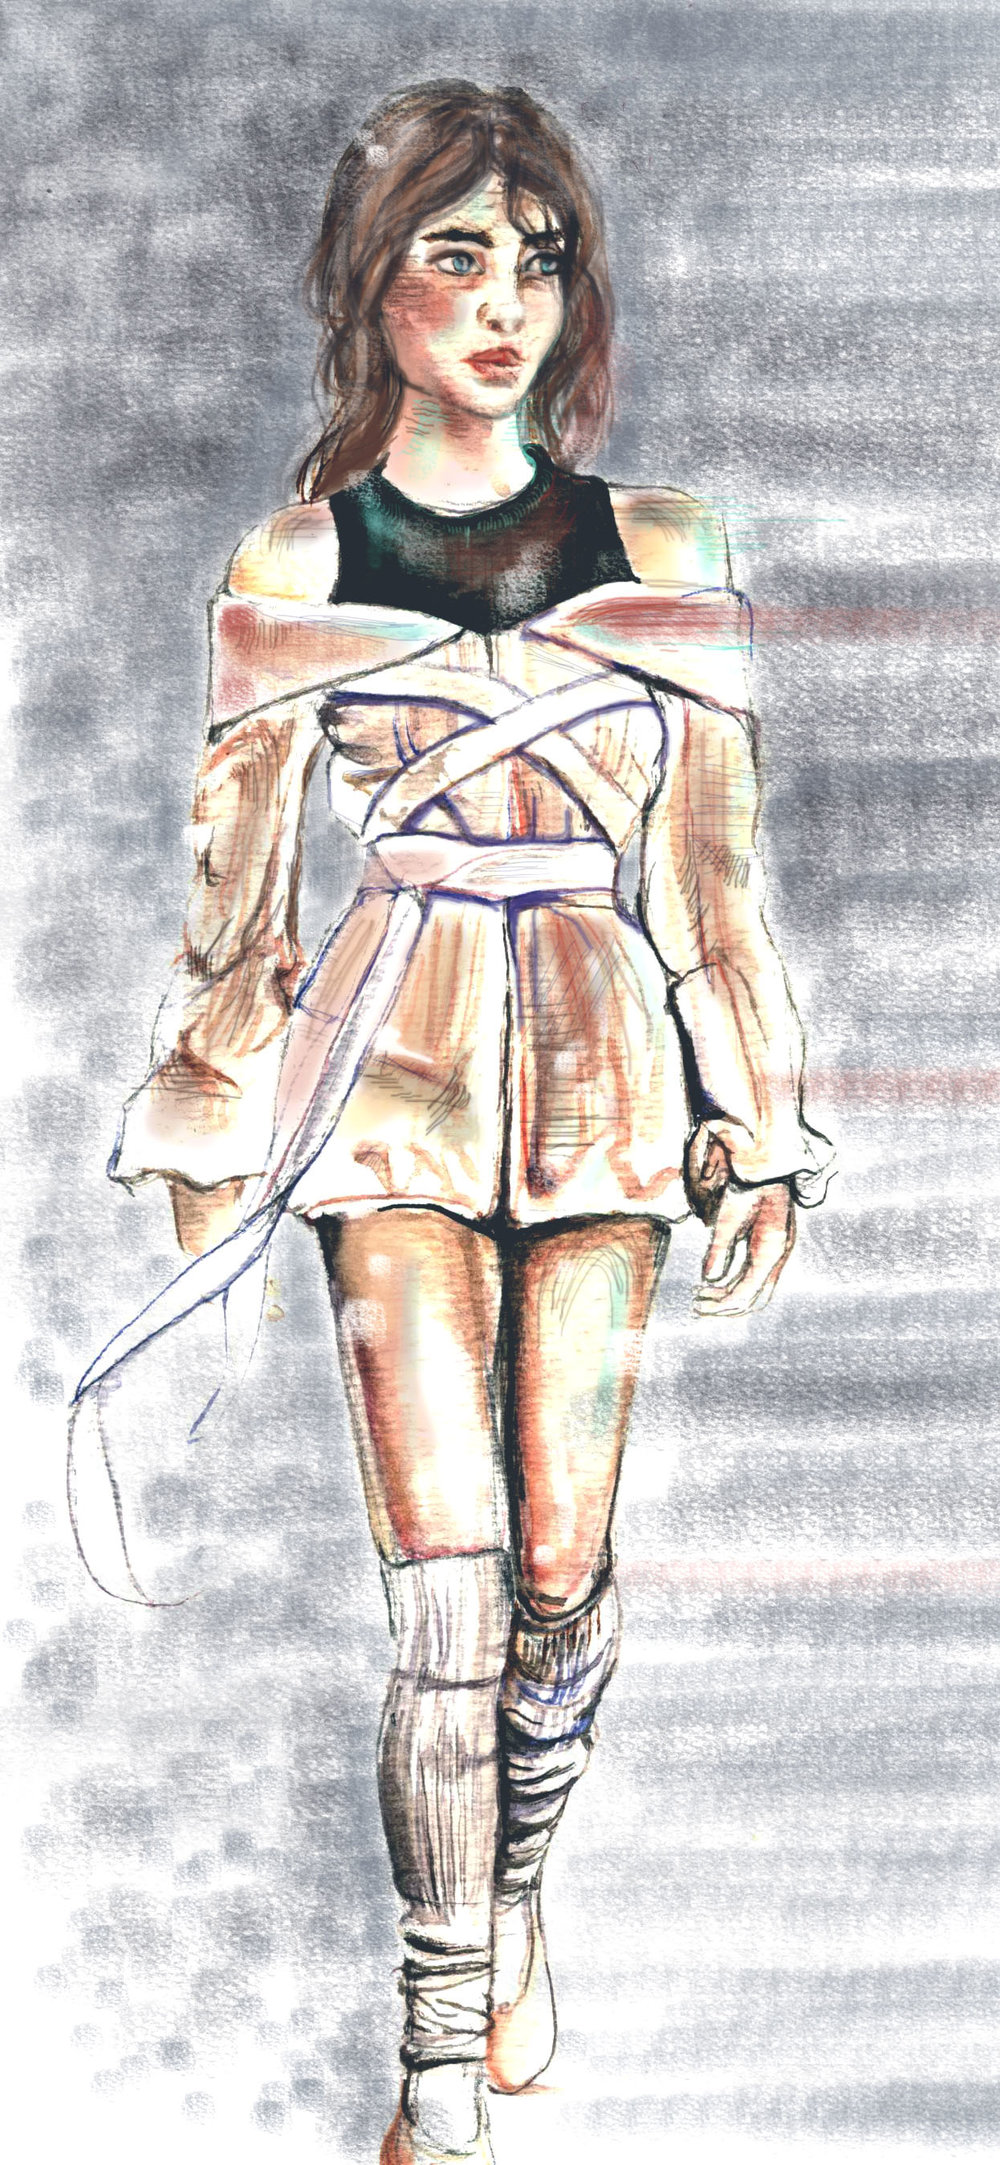 Fashion Show Review - Illustrated and Written by Krista Webster